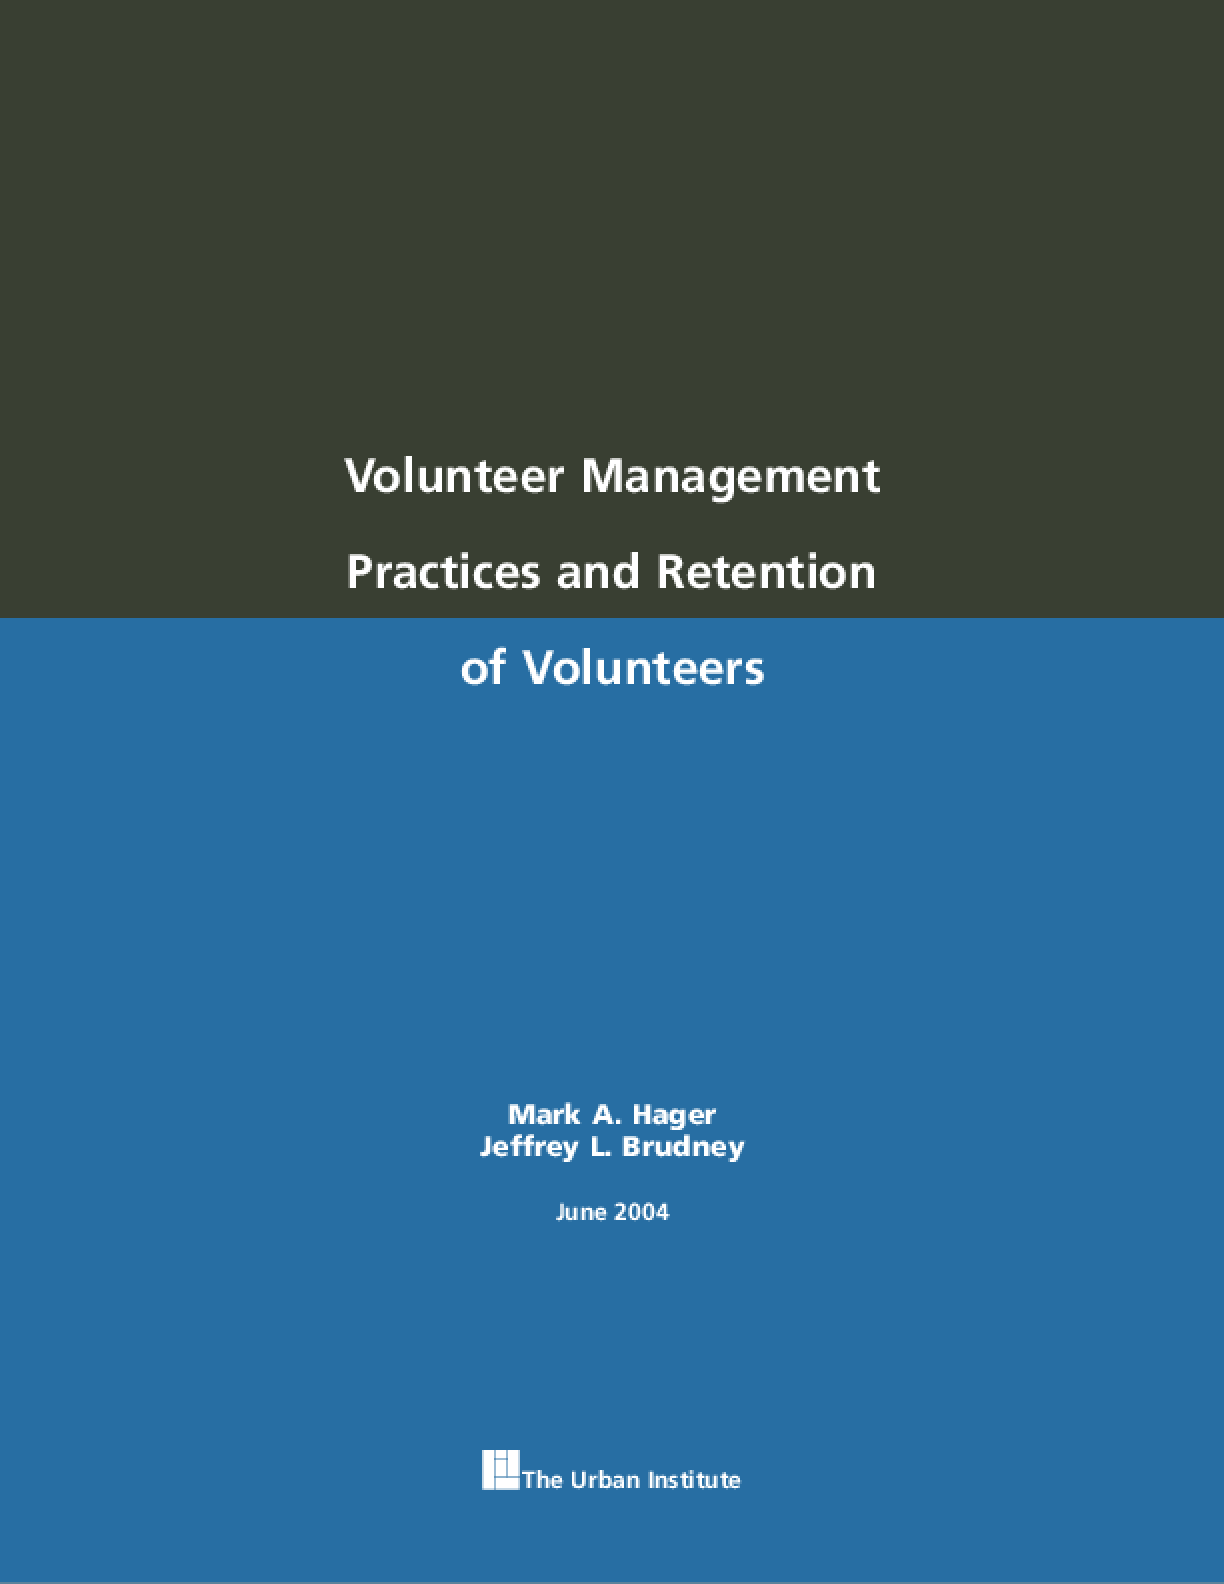 Volunteer Management Practices and Retention of Volunteers